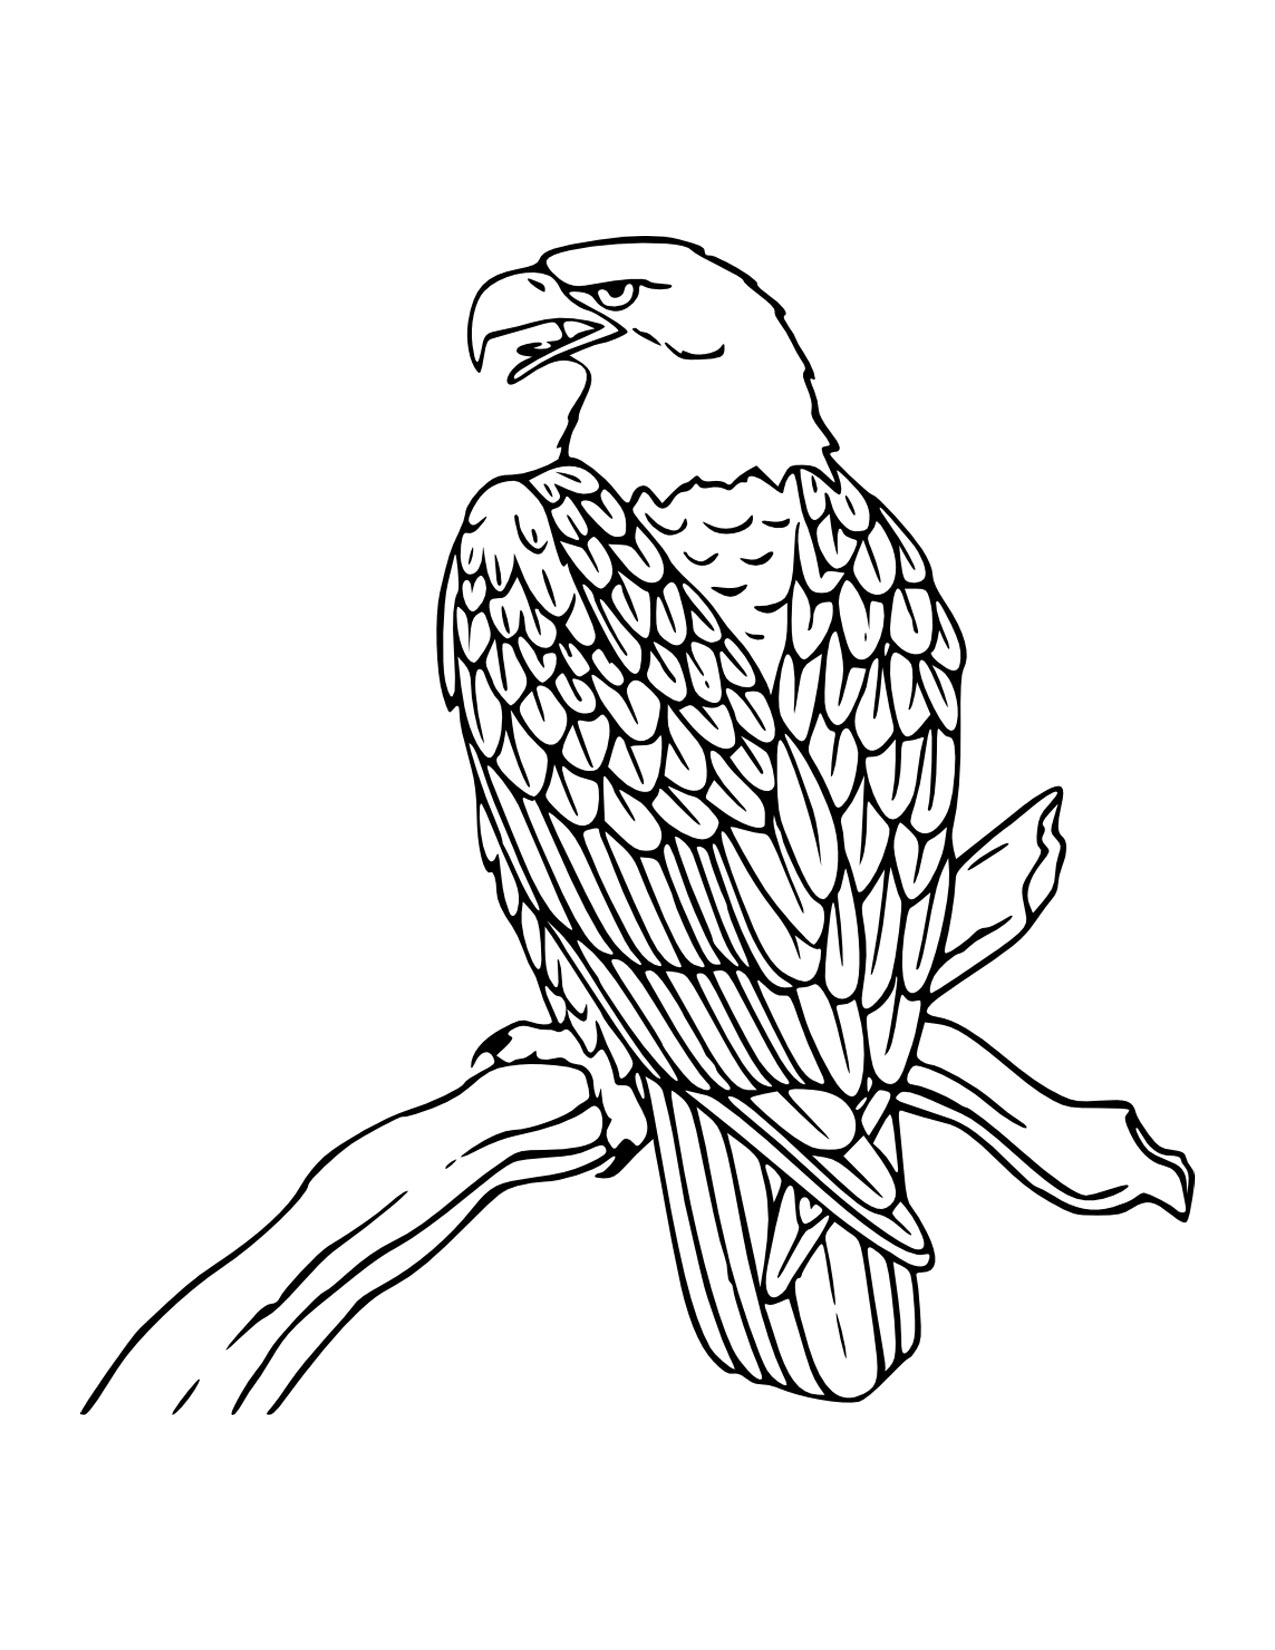 bald eagle coloring sheet coloring pages on pinterest adult coloring pages sheet bald coloring eagle